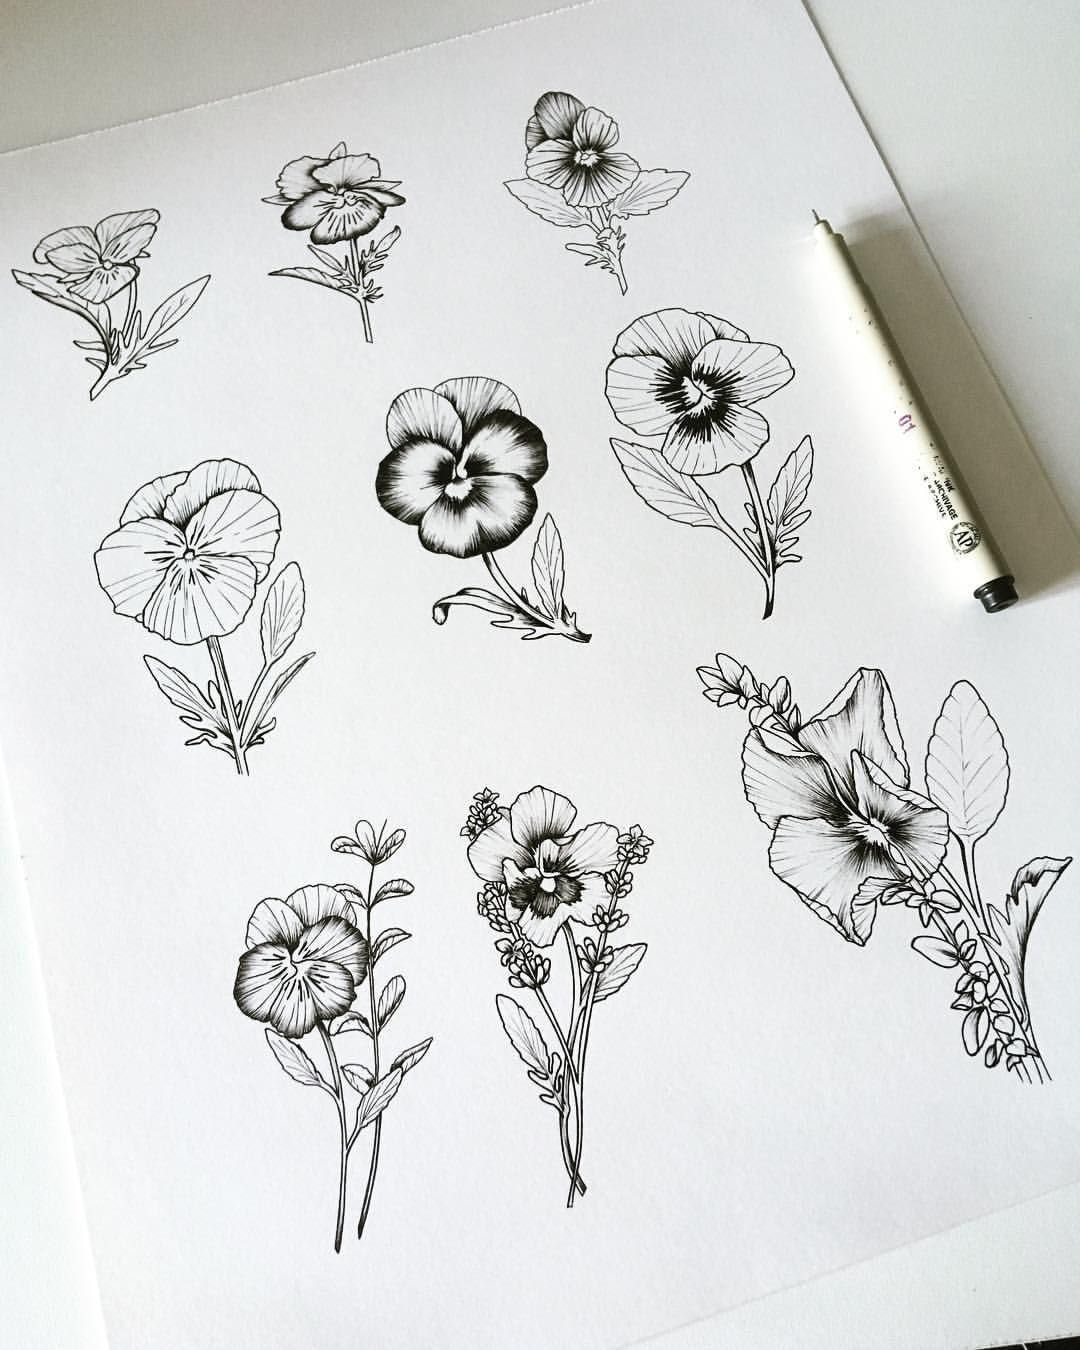 Pansies Pansy Drawing Pansy Tattoo Tattoo Inspiration Flower Tattoo Flash Artwork Pansy Tattoo Violet Flower Tattoos Violet Tattoo